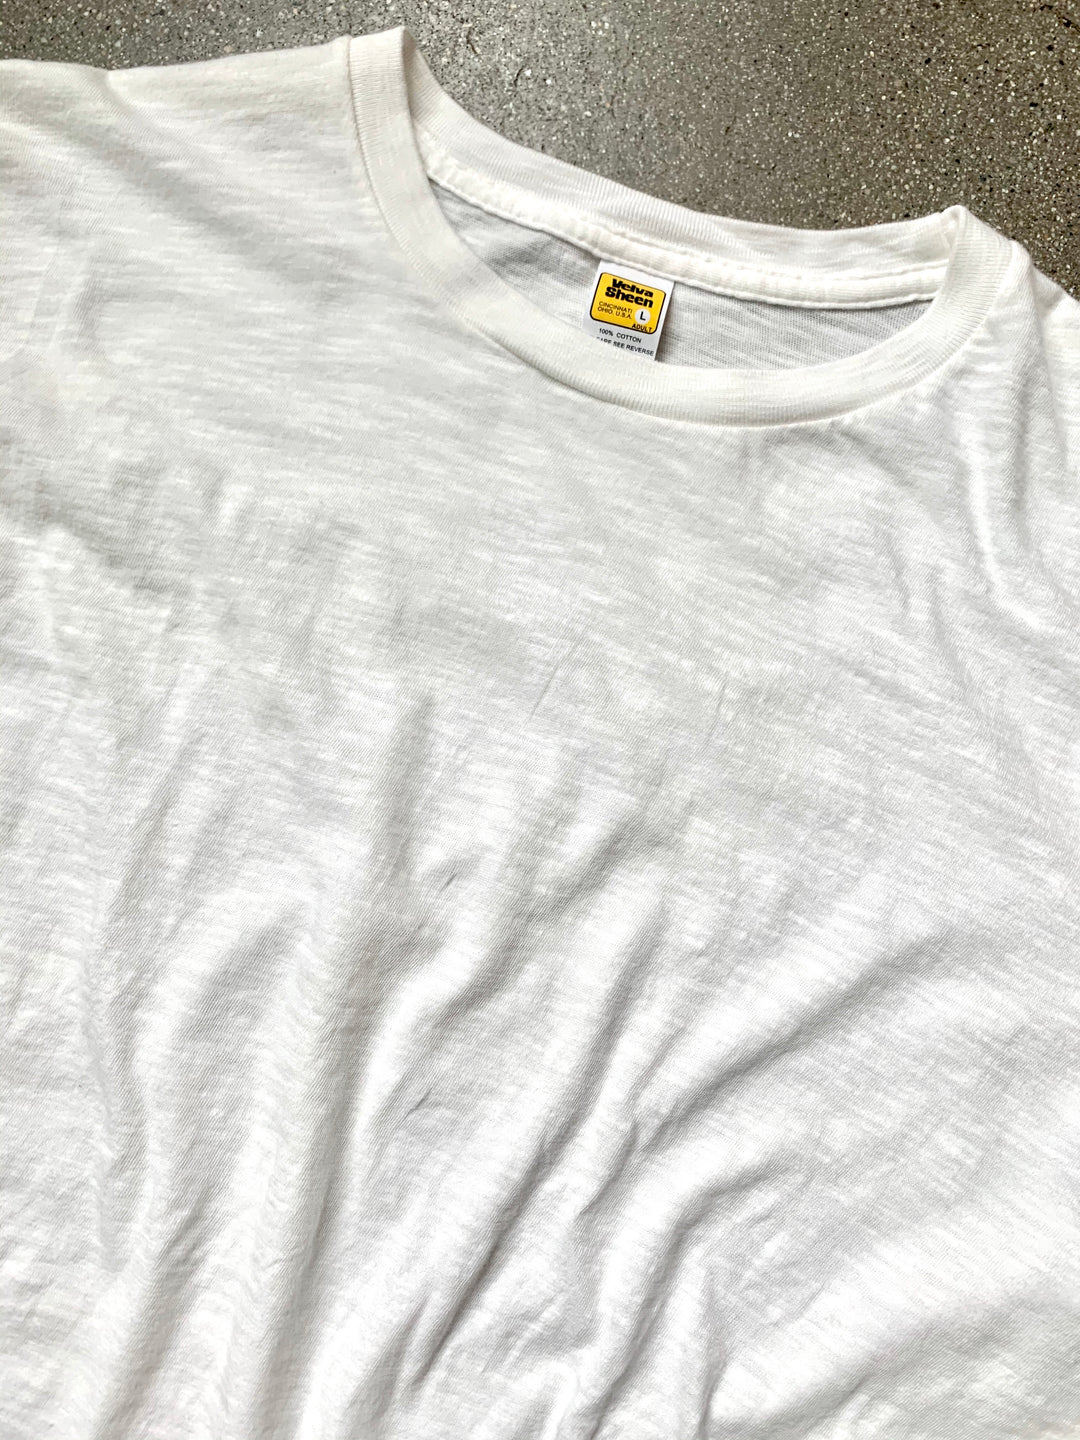 Velva Sheen White Regular Long Sleeve Tee